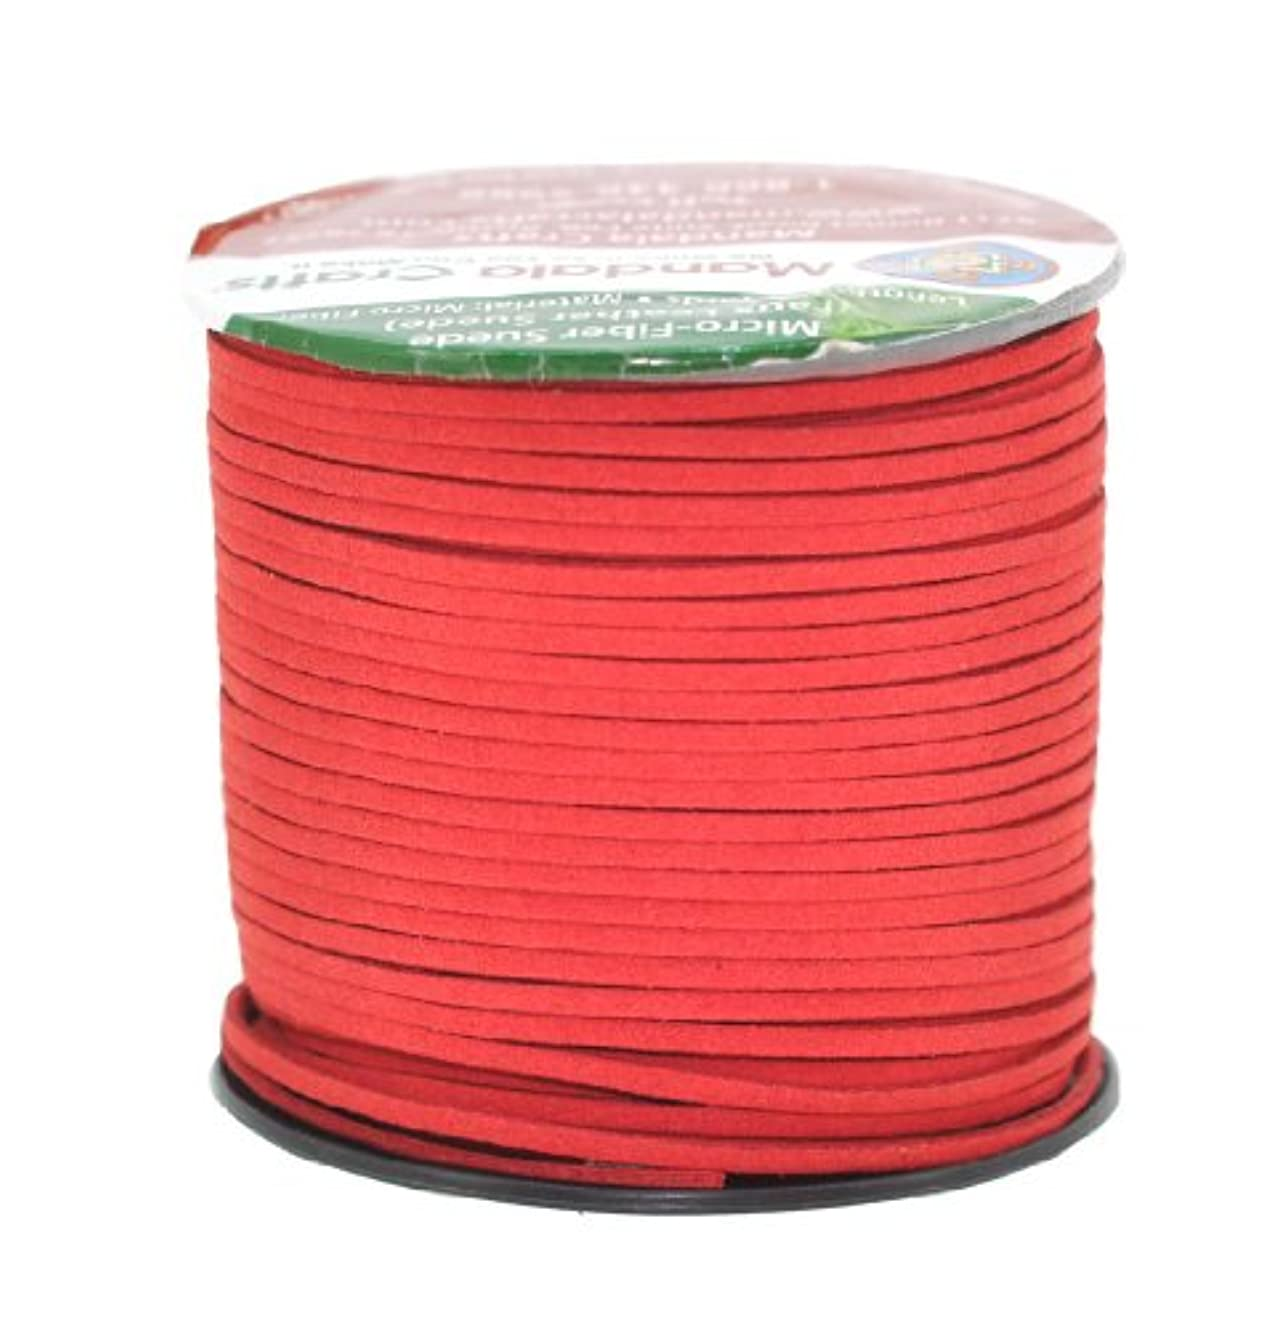 Mandala Crafts 100 Yards 2.65mm Wide Jewelry Making Flat Micro Fiber Lace Faux Suede Leather Cord (Red)